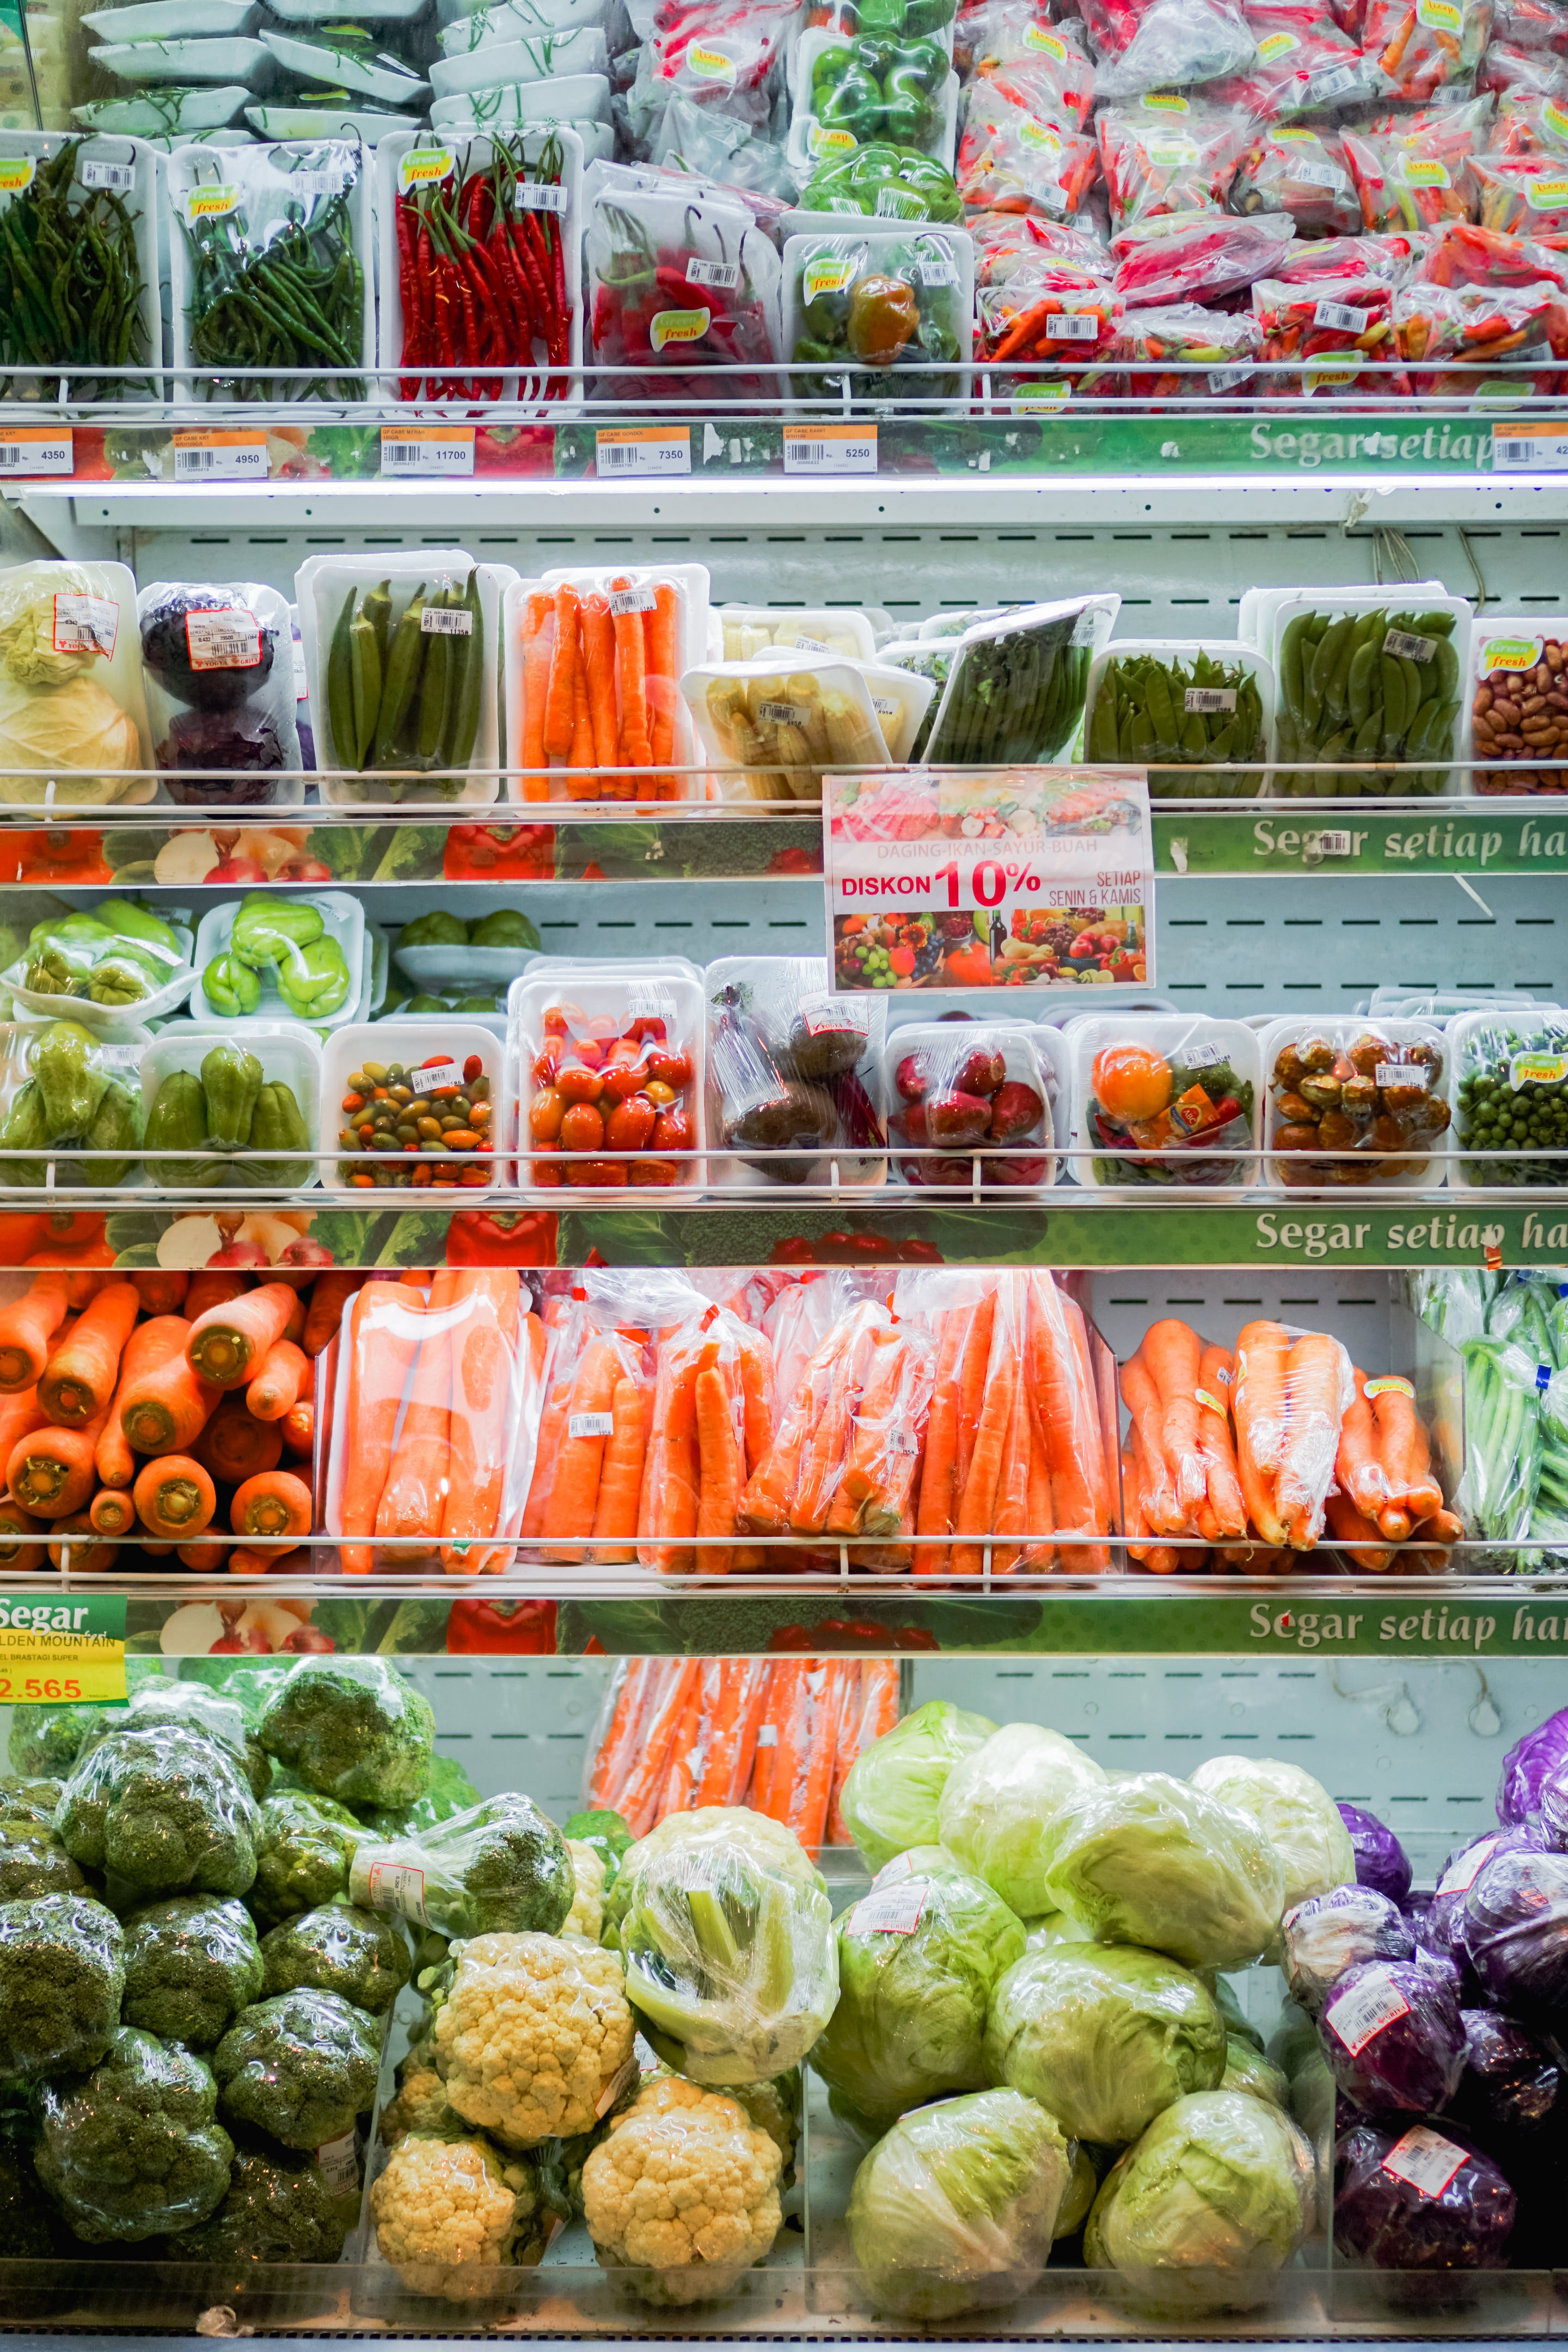 Consumer and Manufacturing Driven Alternative Packaging Solutions from Agrifood Waste Streams